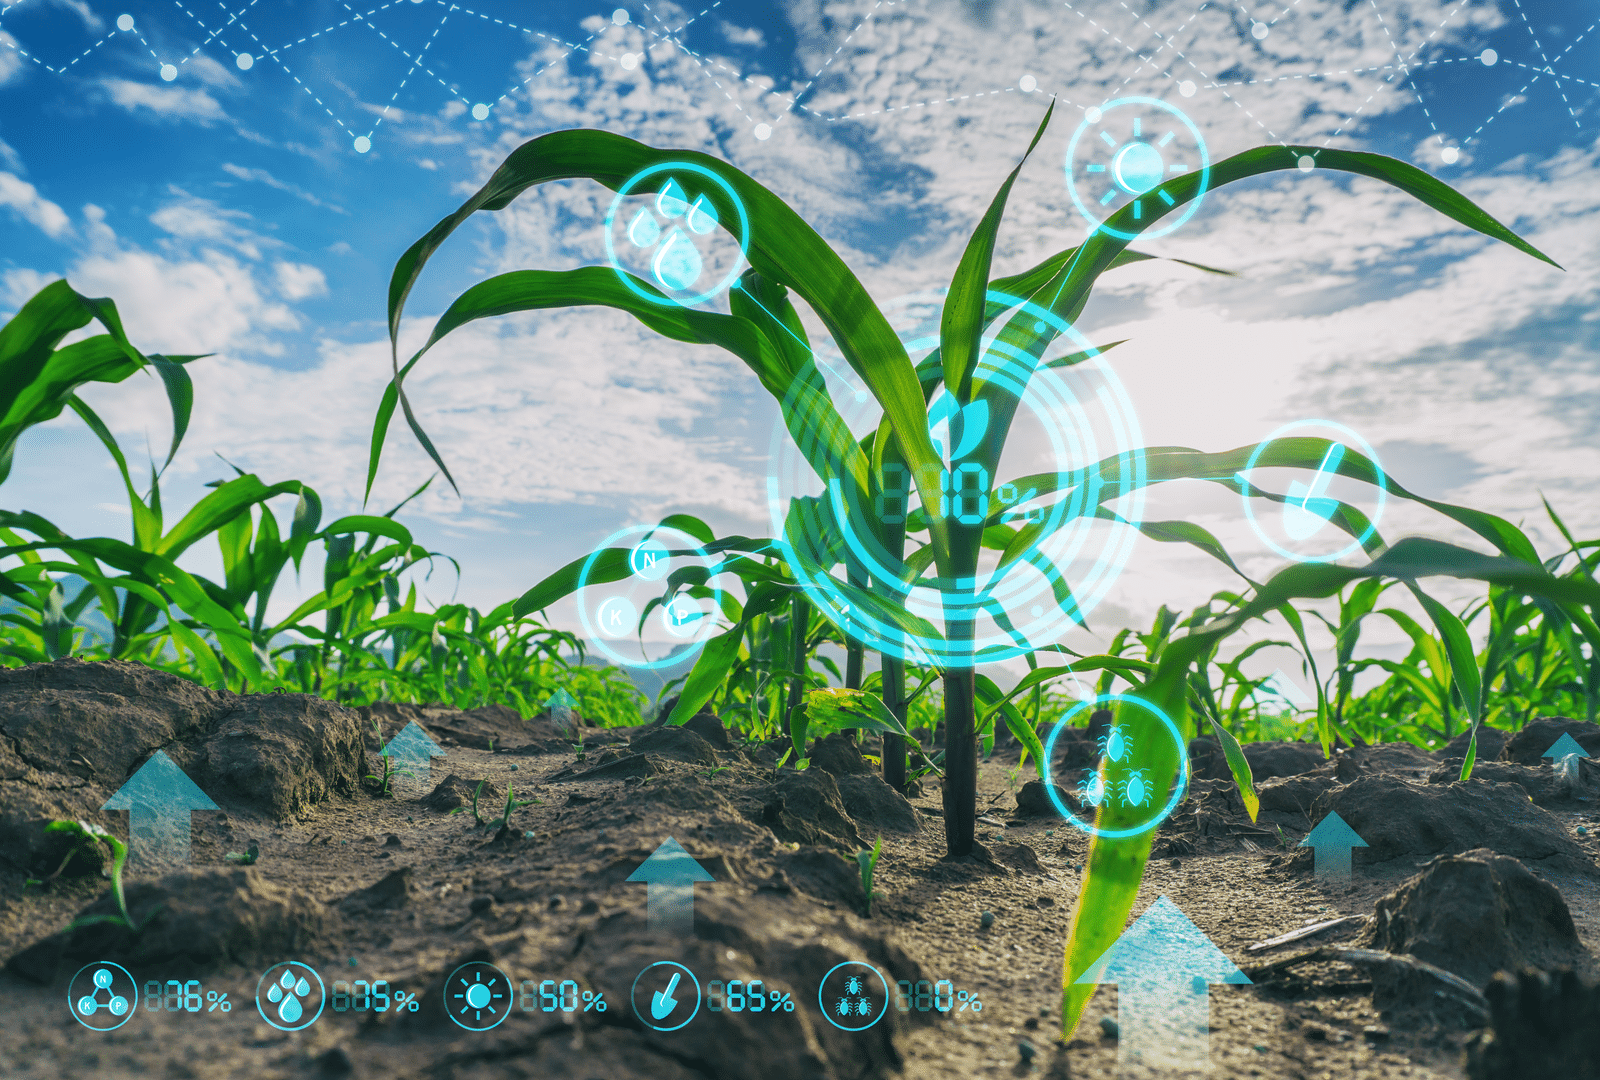 Linux Foundation starts landmark open source agtech project, AgStack